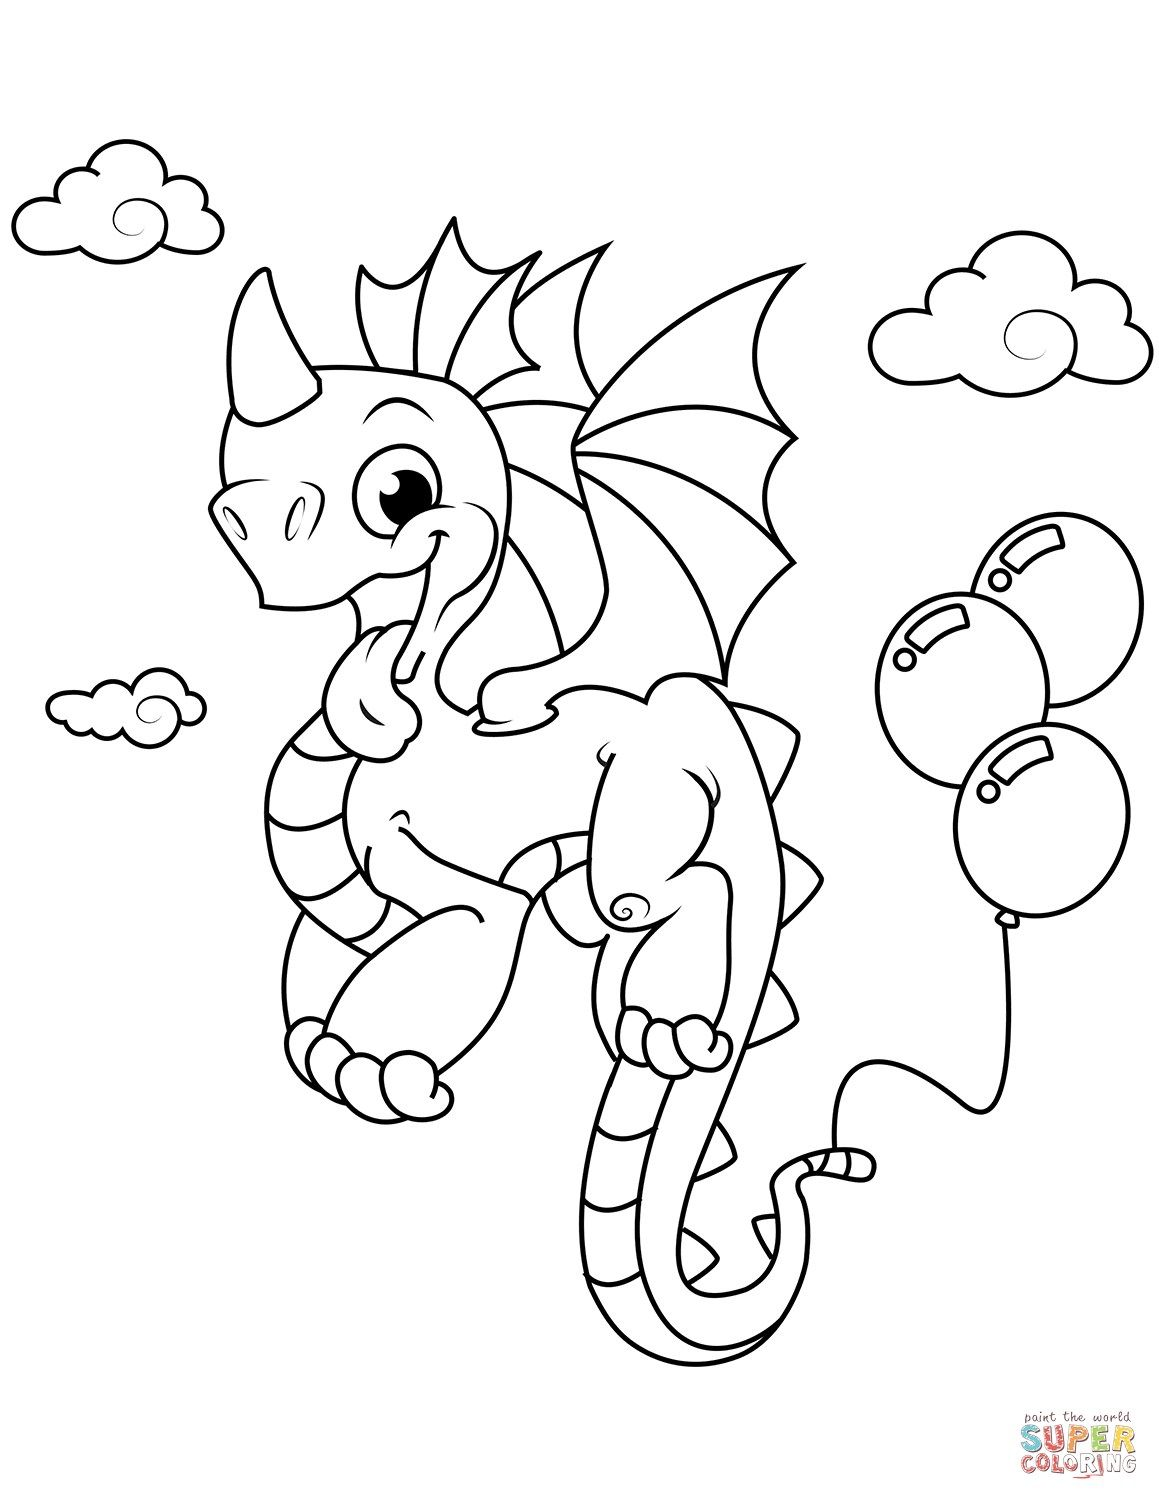 25 Awesome Image Of Coloring Pages Dragons Davemelillo Com Dragon Coloring Page Bird Coloring Pages Pokemon Coloring Pages